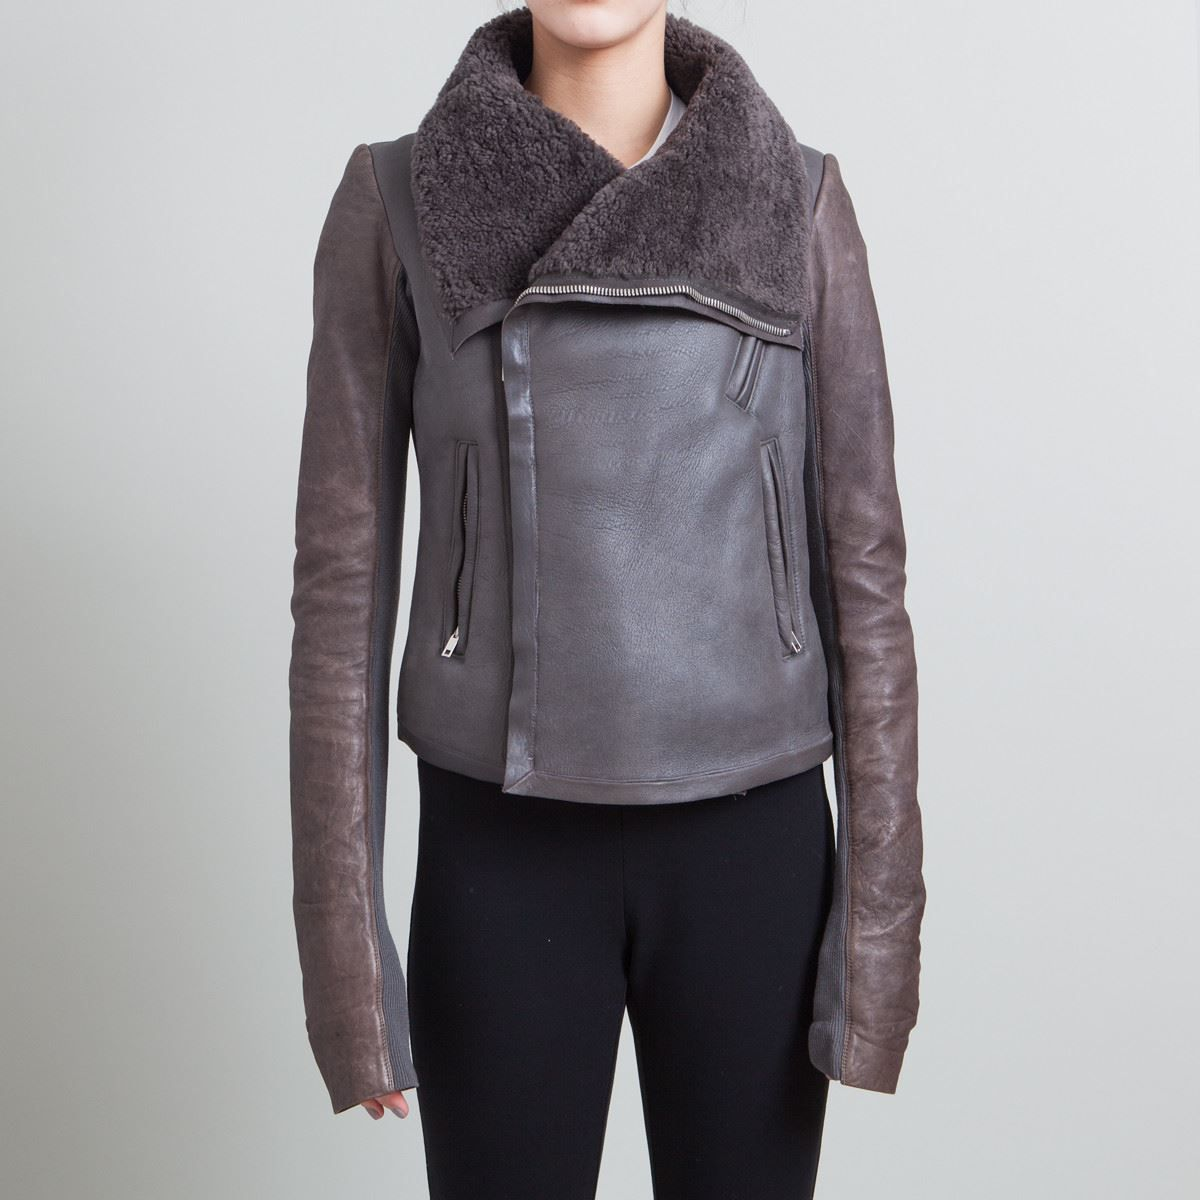 Rick Owens Grey and Brown Leather Shearling Jacket Size